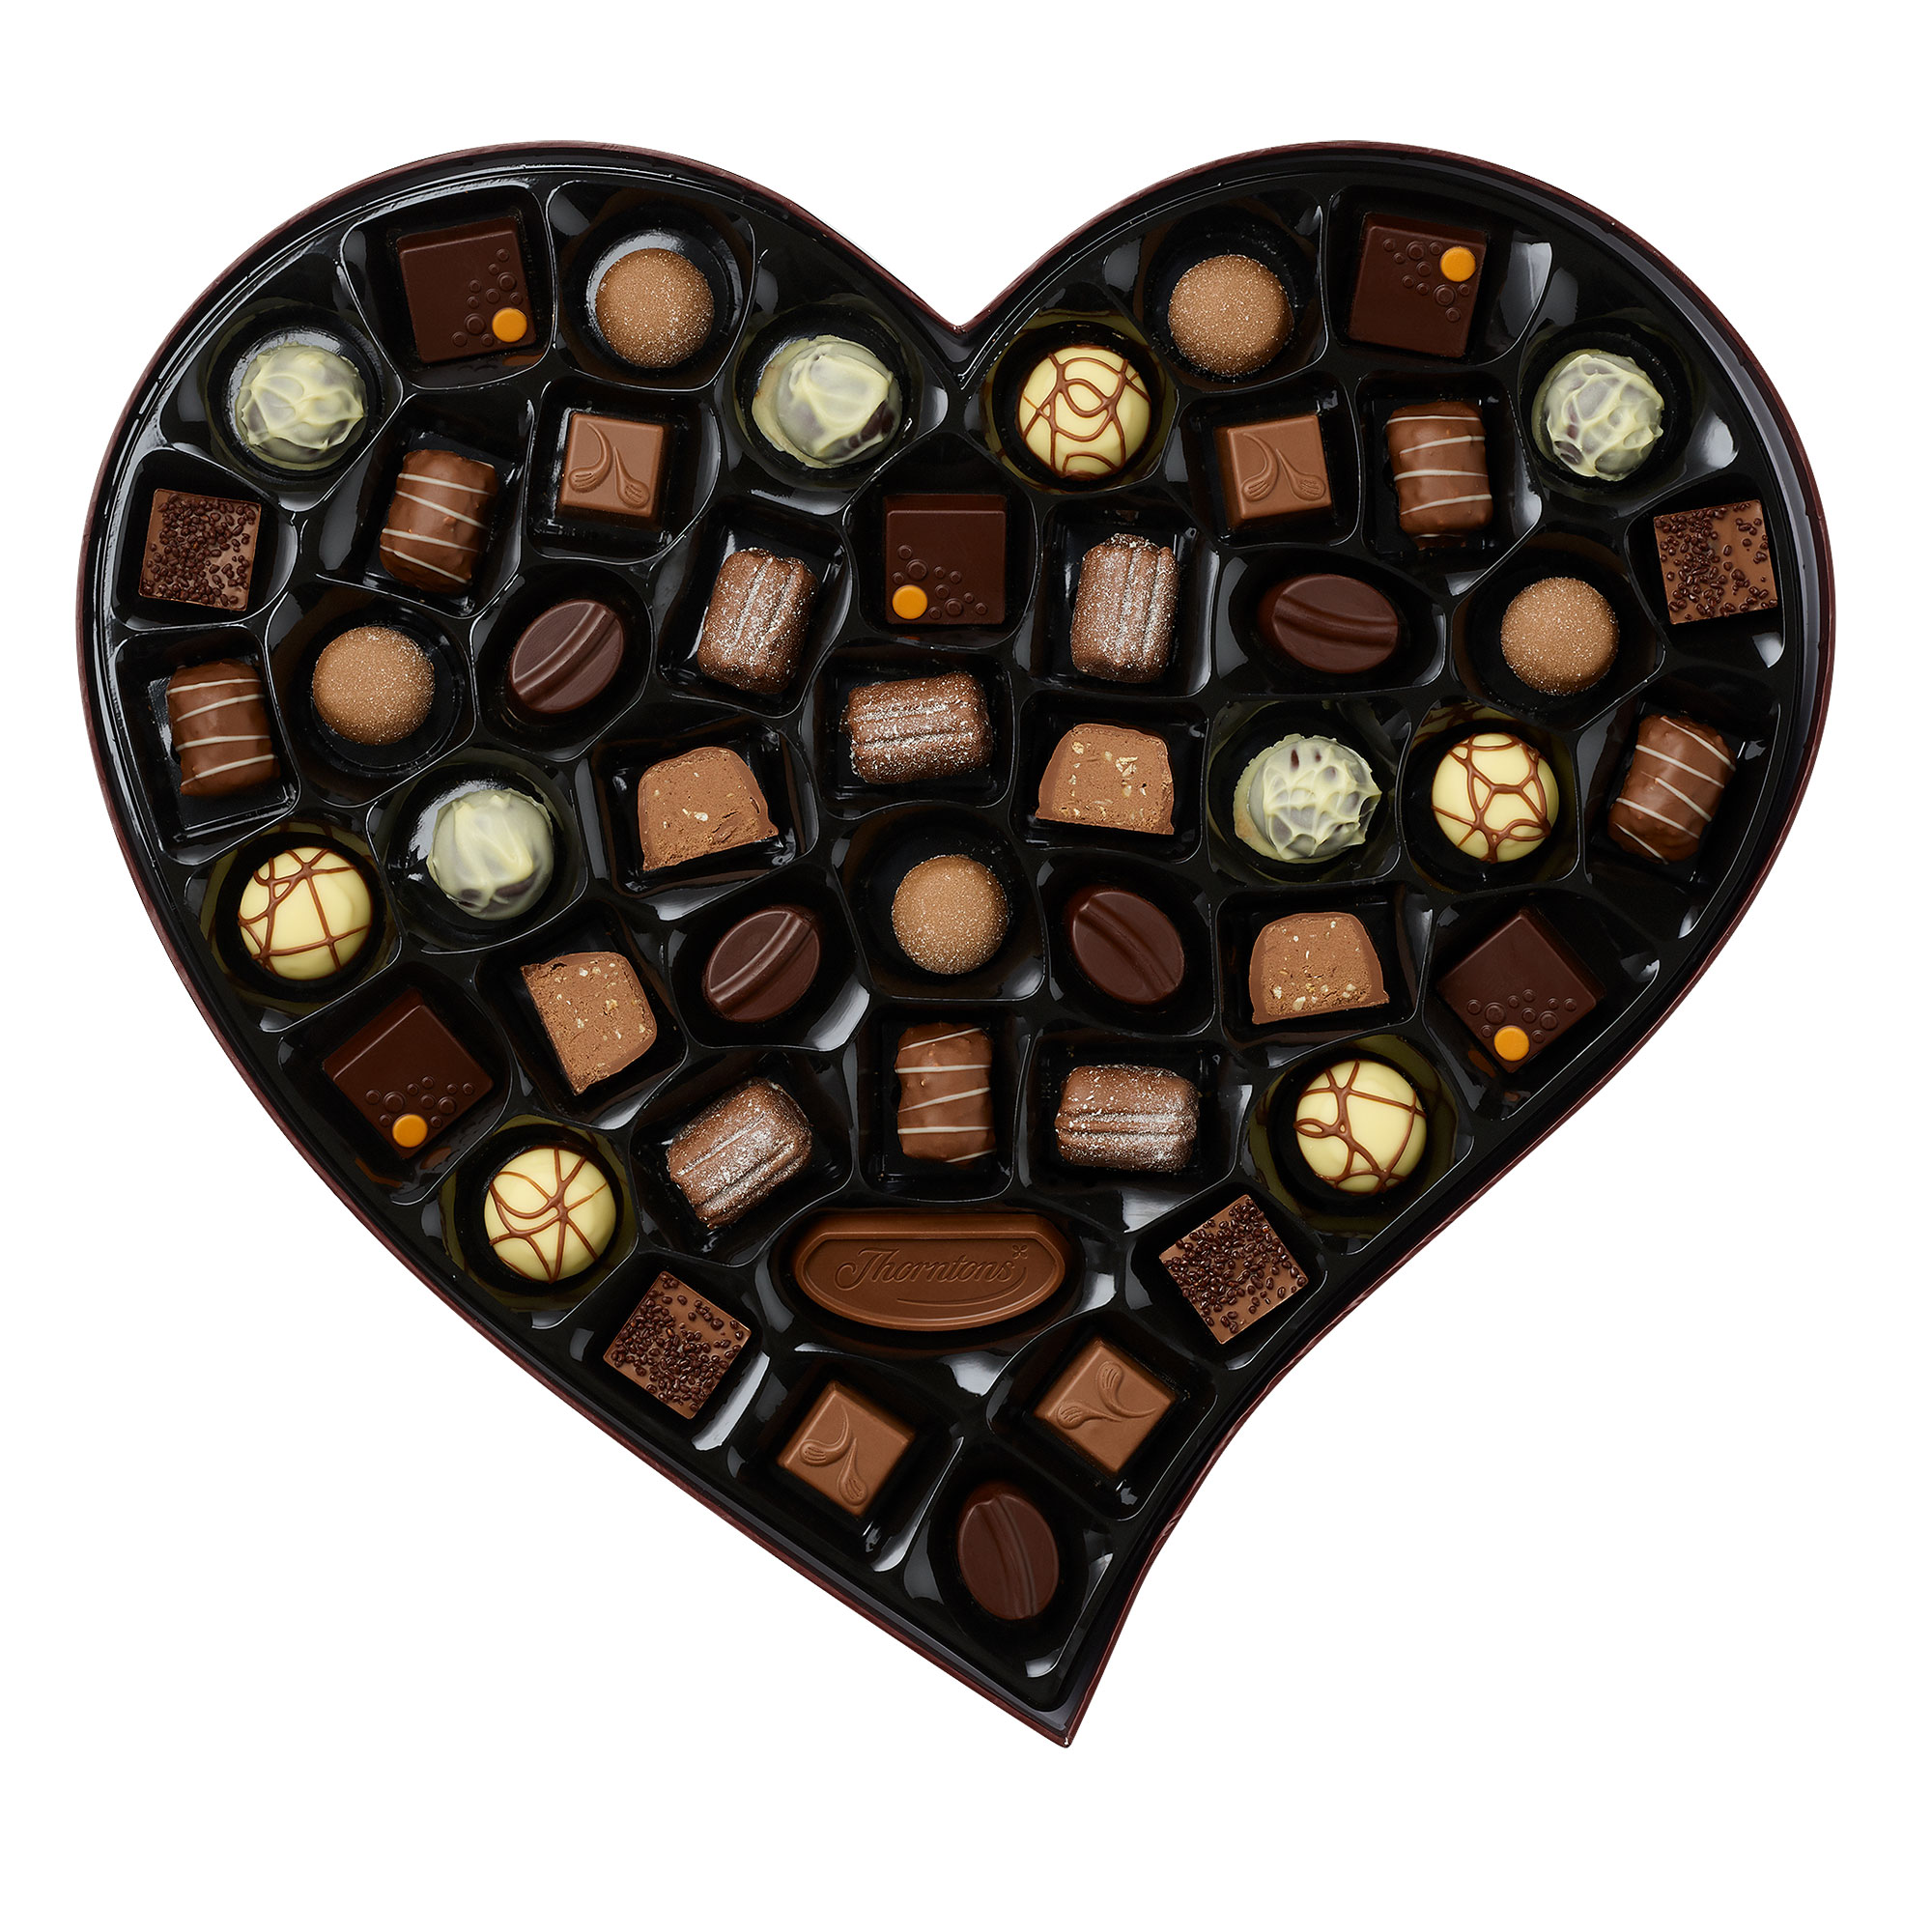 Continental Heart Box | Chocolate Gifts | Thorntons